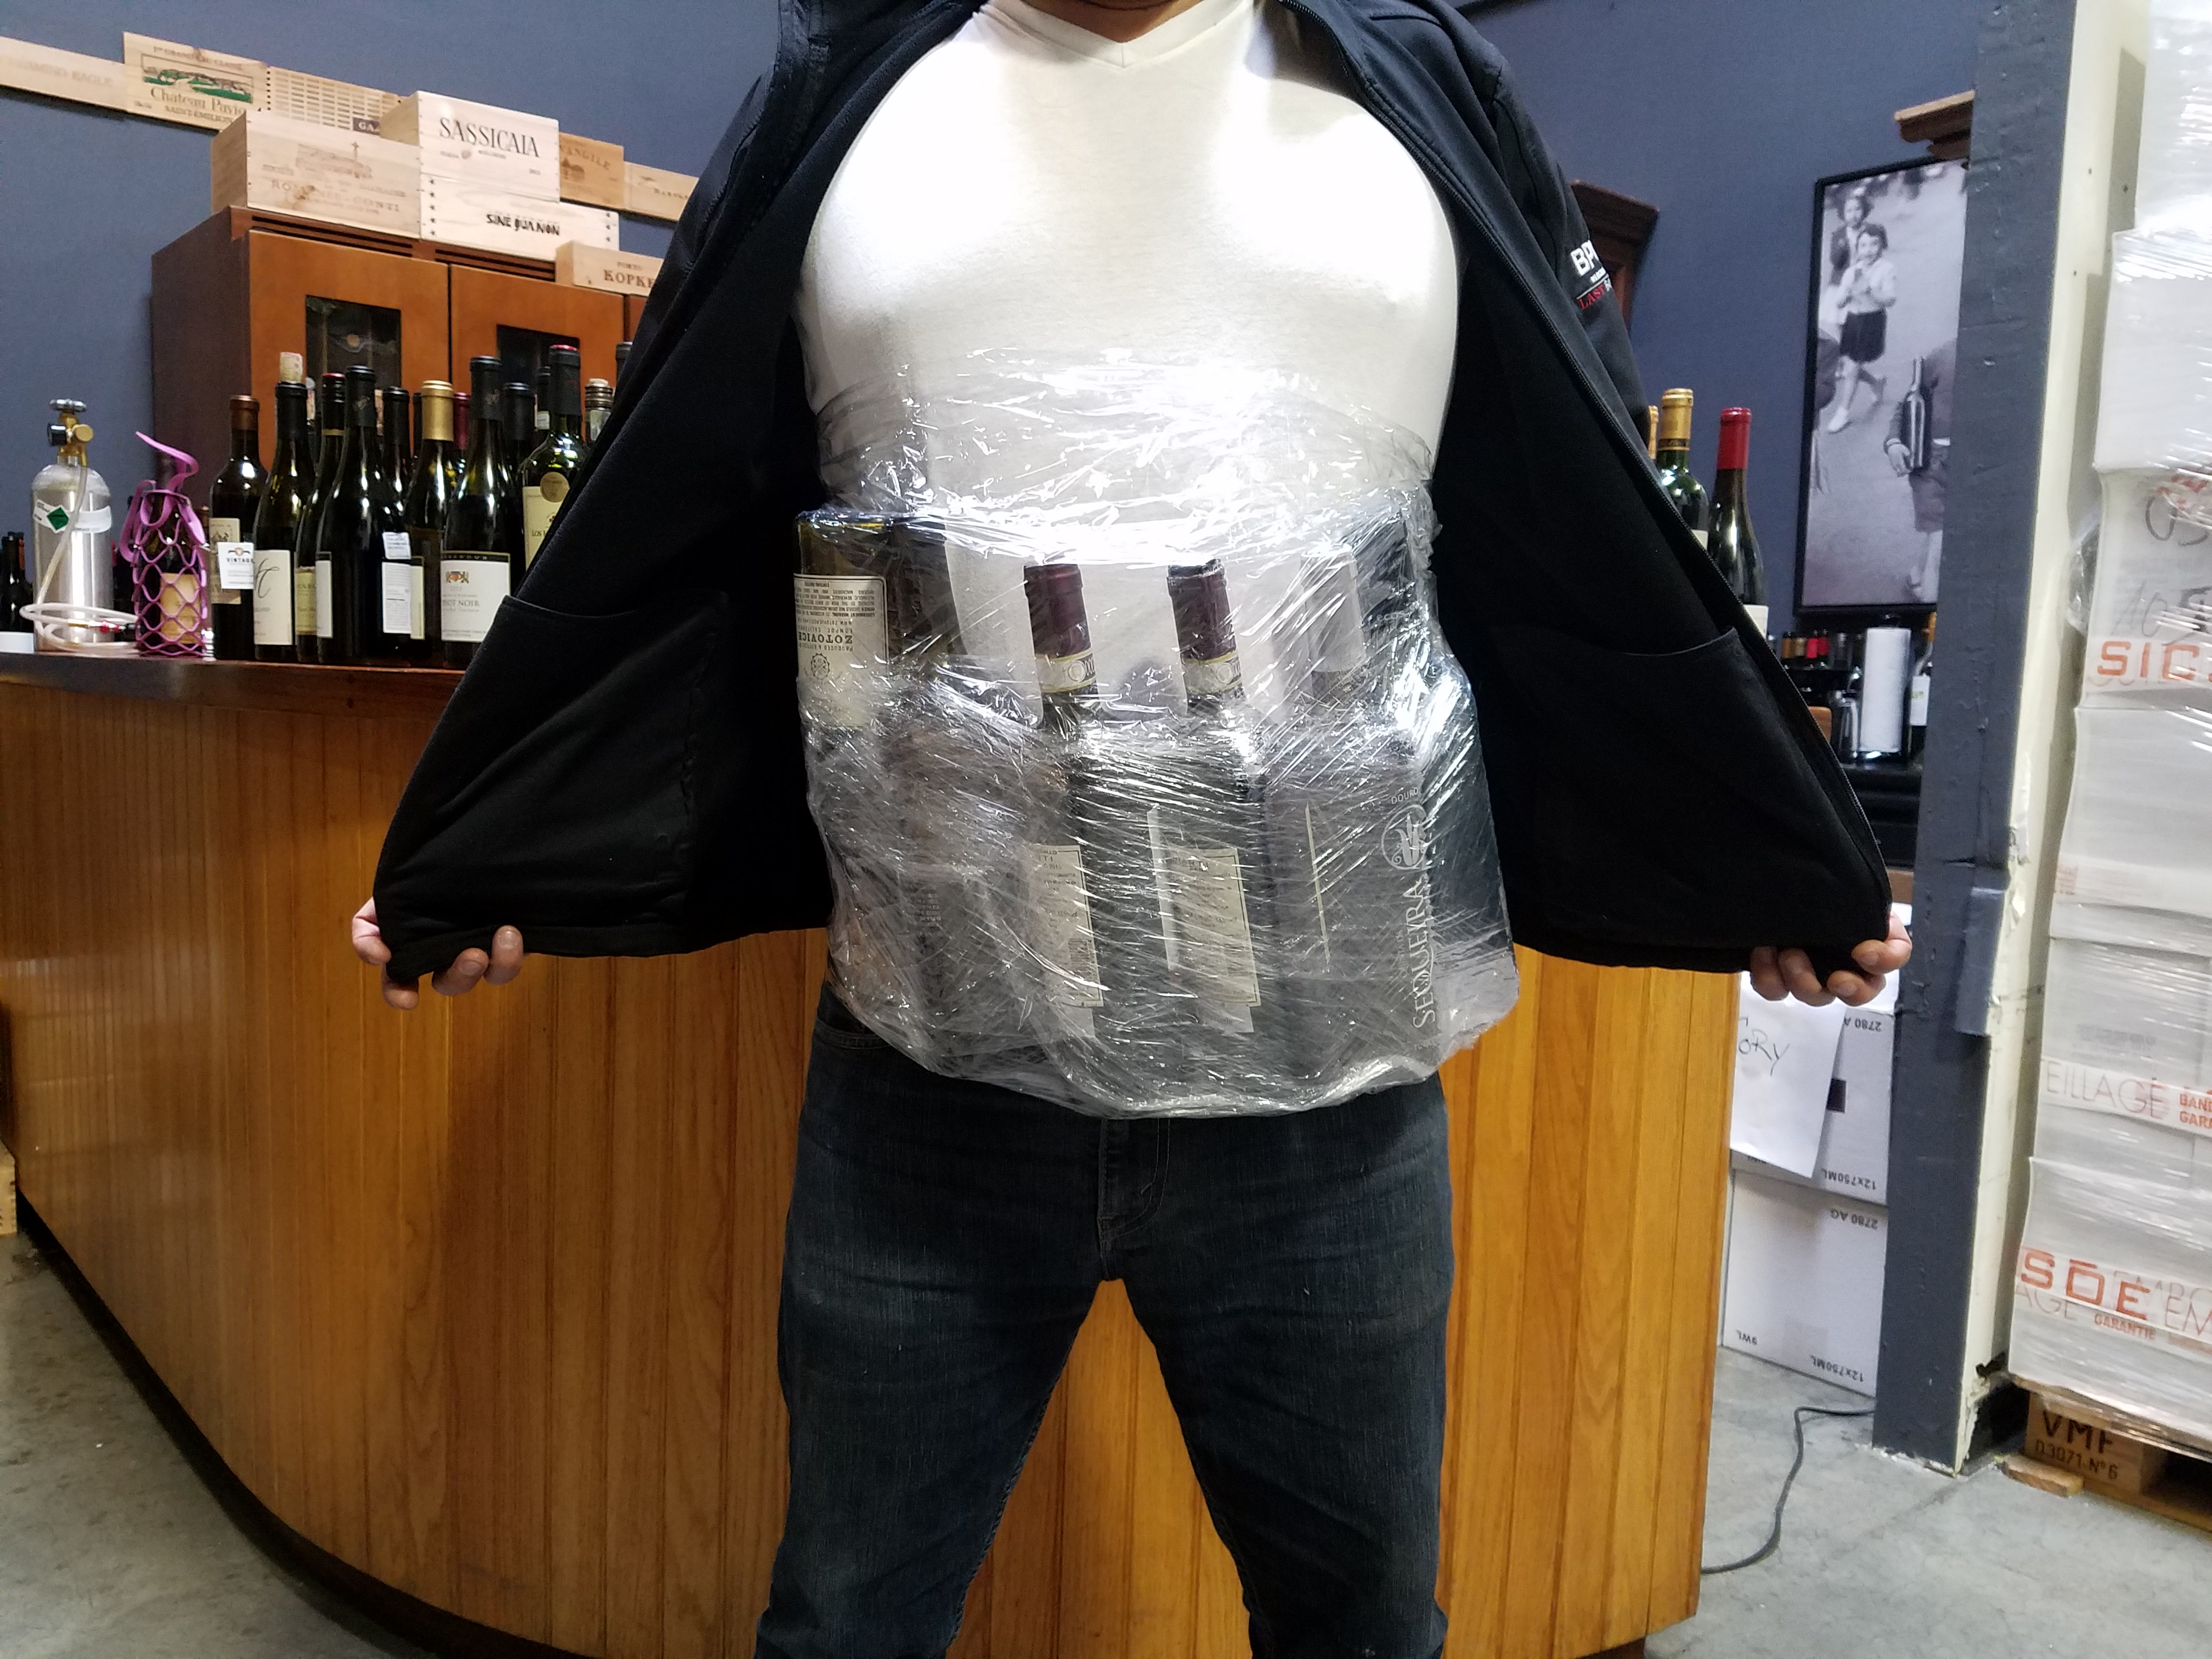 10+ ways to master the art of smuggling booze